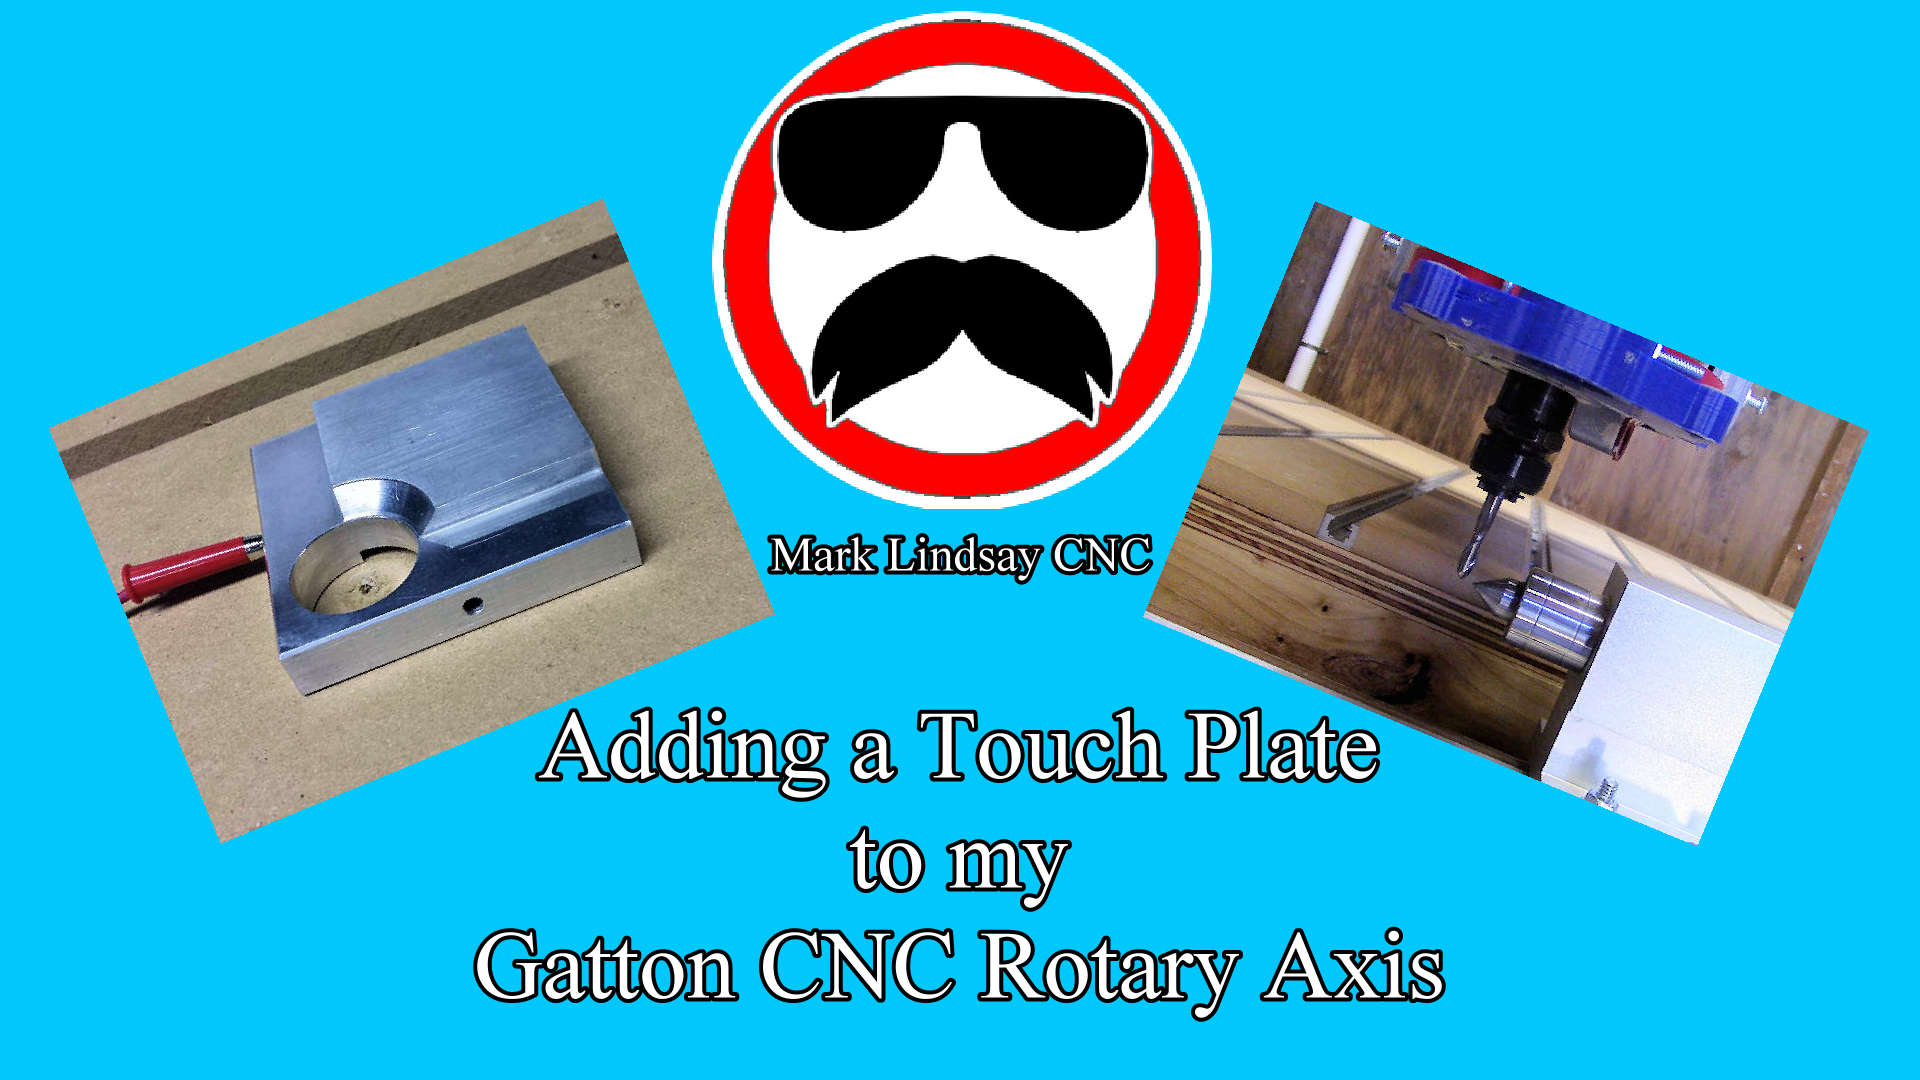 Adding a Touch Plate and Modifying the Tailstock Mount for the Rotary Axis on My Gatton CNC